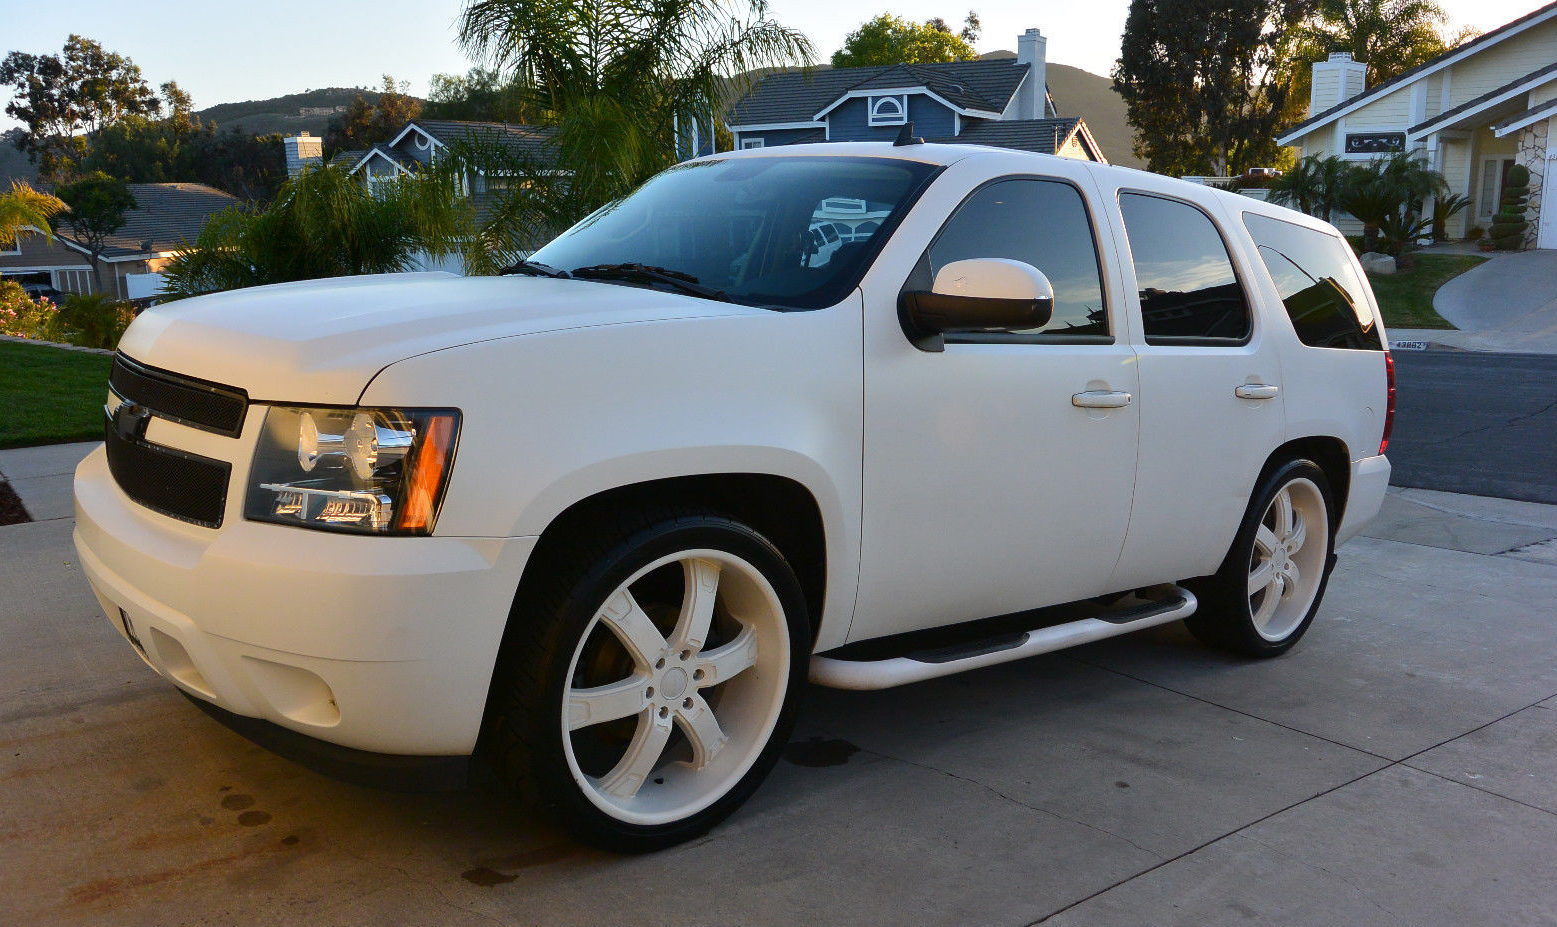 Rob Dyrdek\'s Old Chevrolet Tahoe For Sale on eBay | Celebrity Cars ...